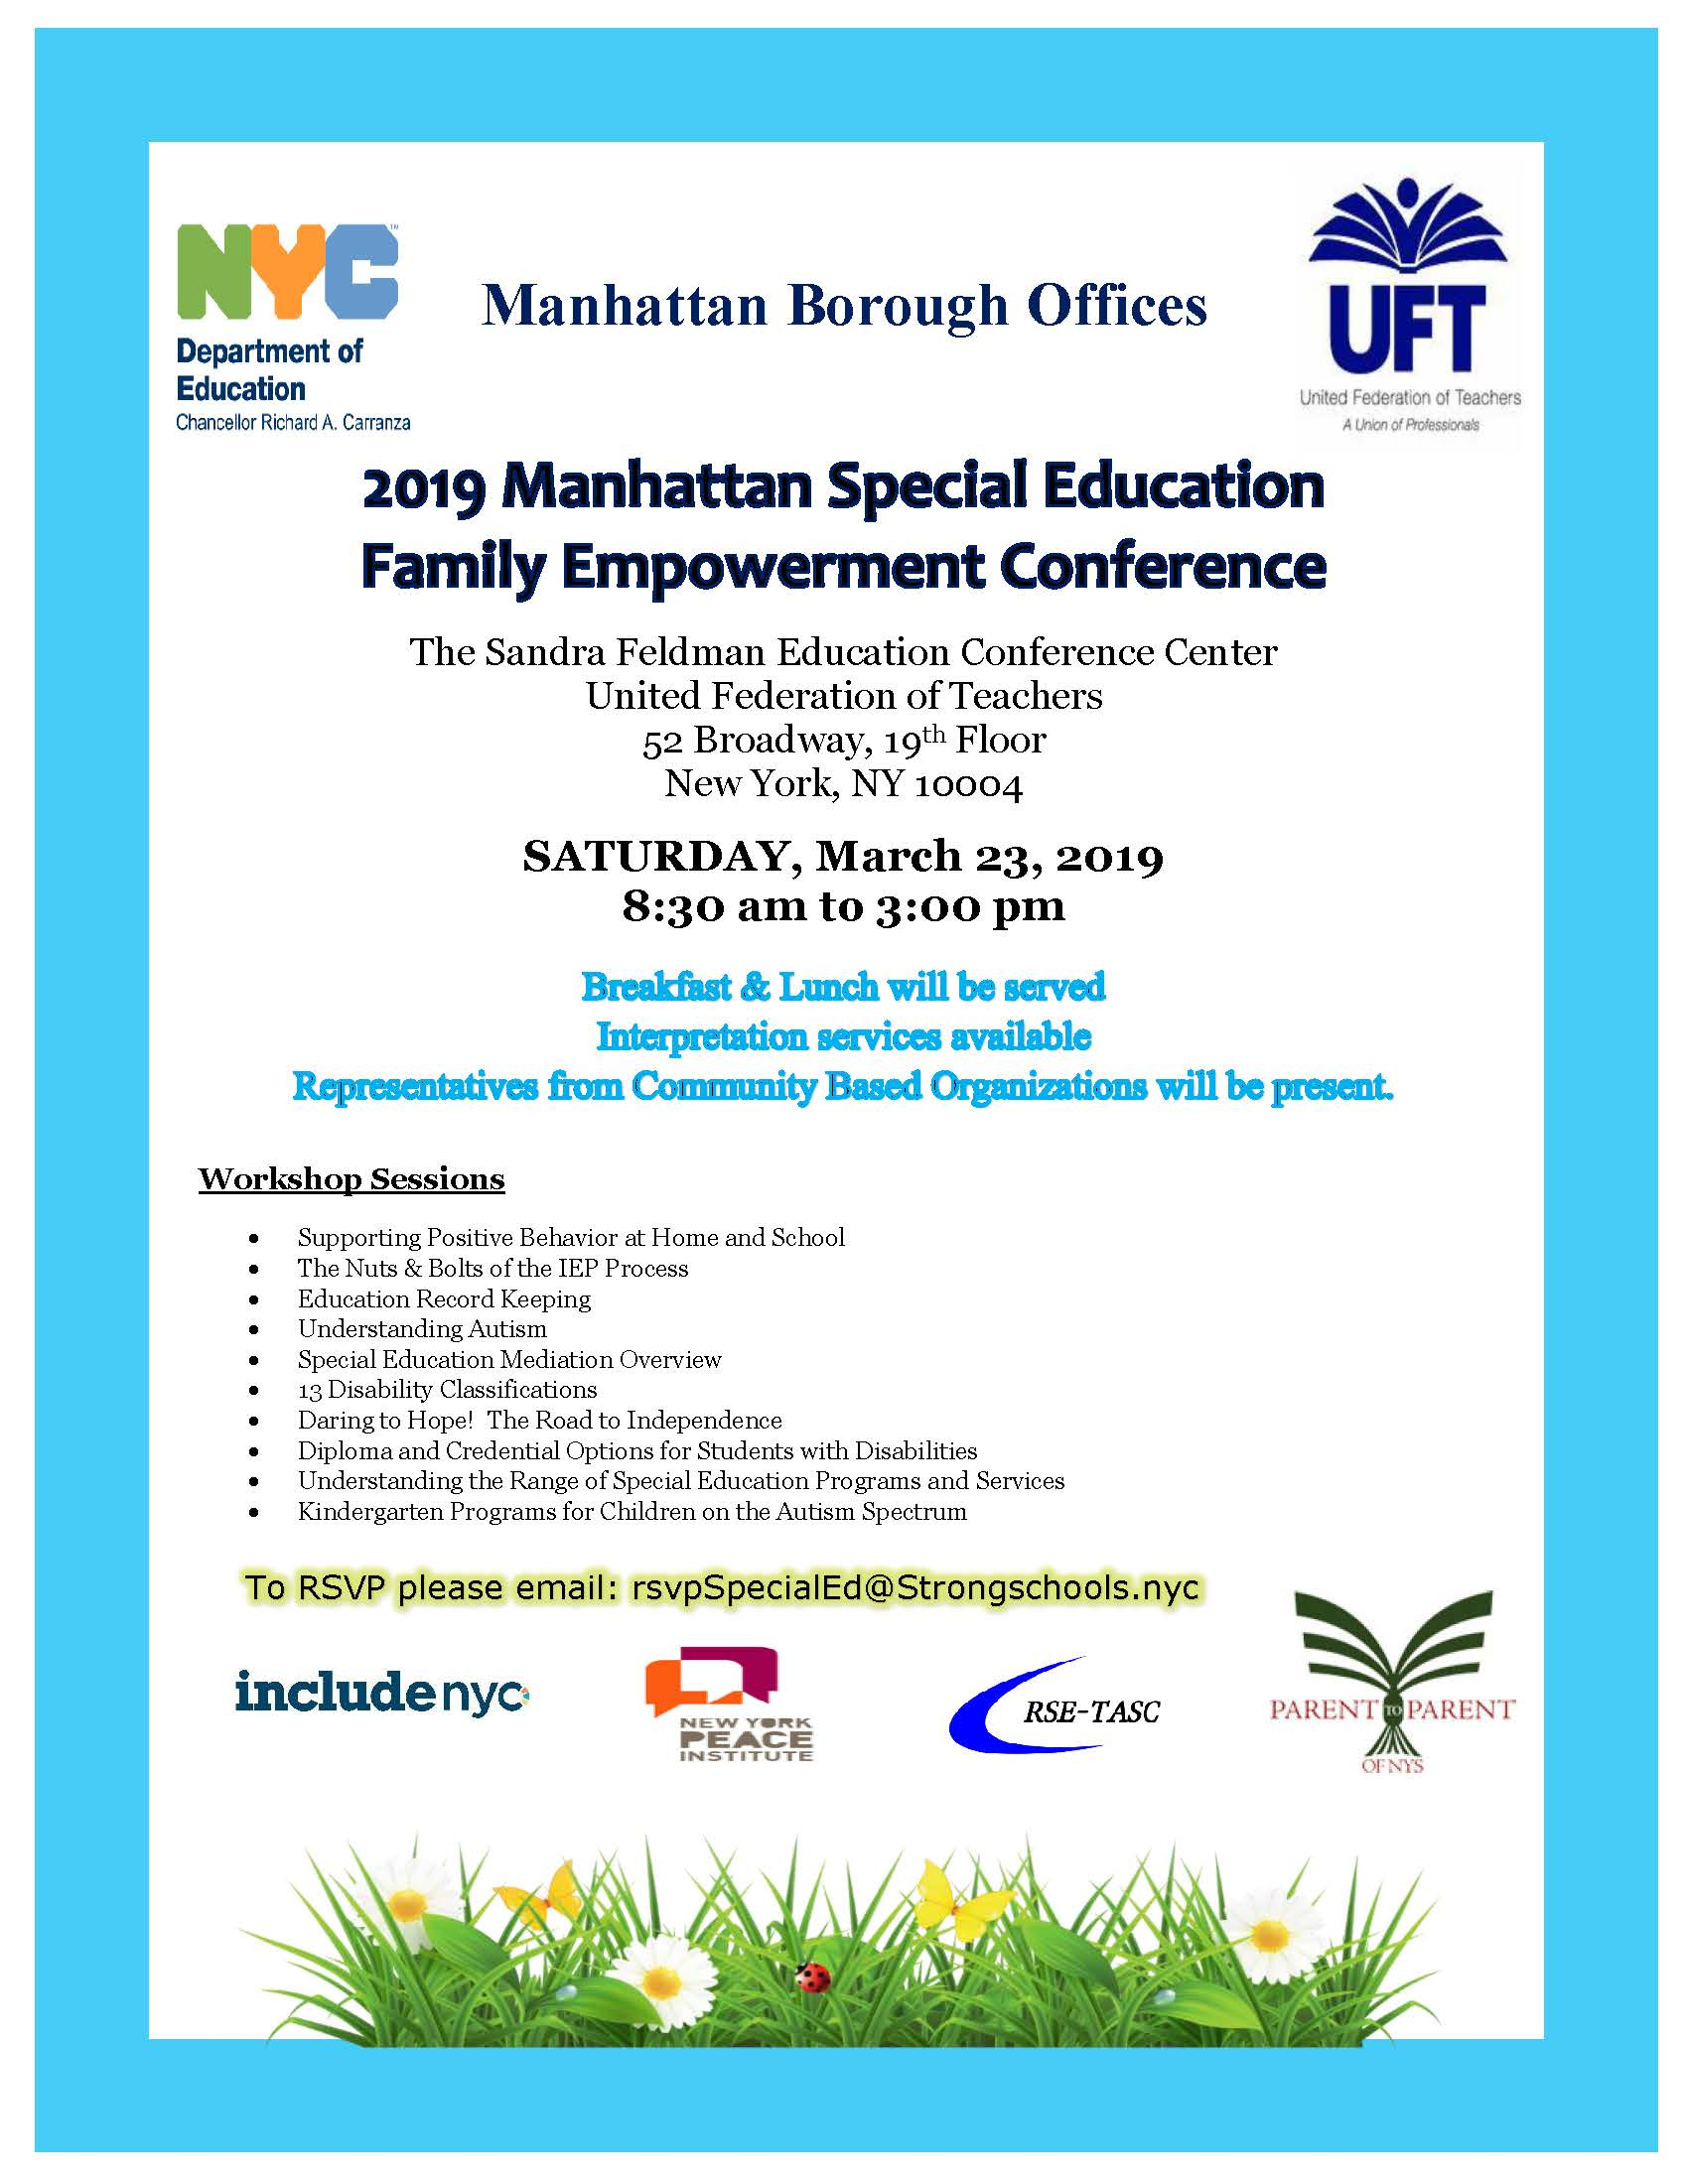 2019 Manhattan Special Education Family Empowerment Conference 03.23.2019 UPDATE